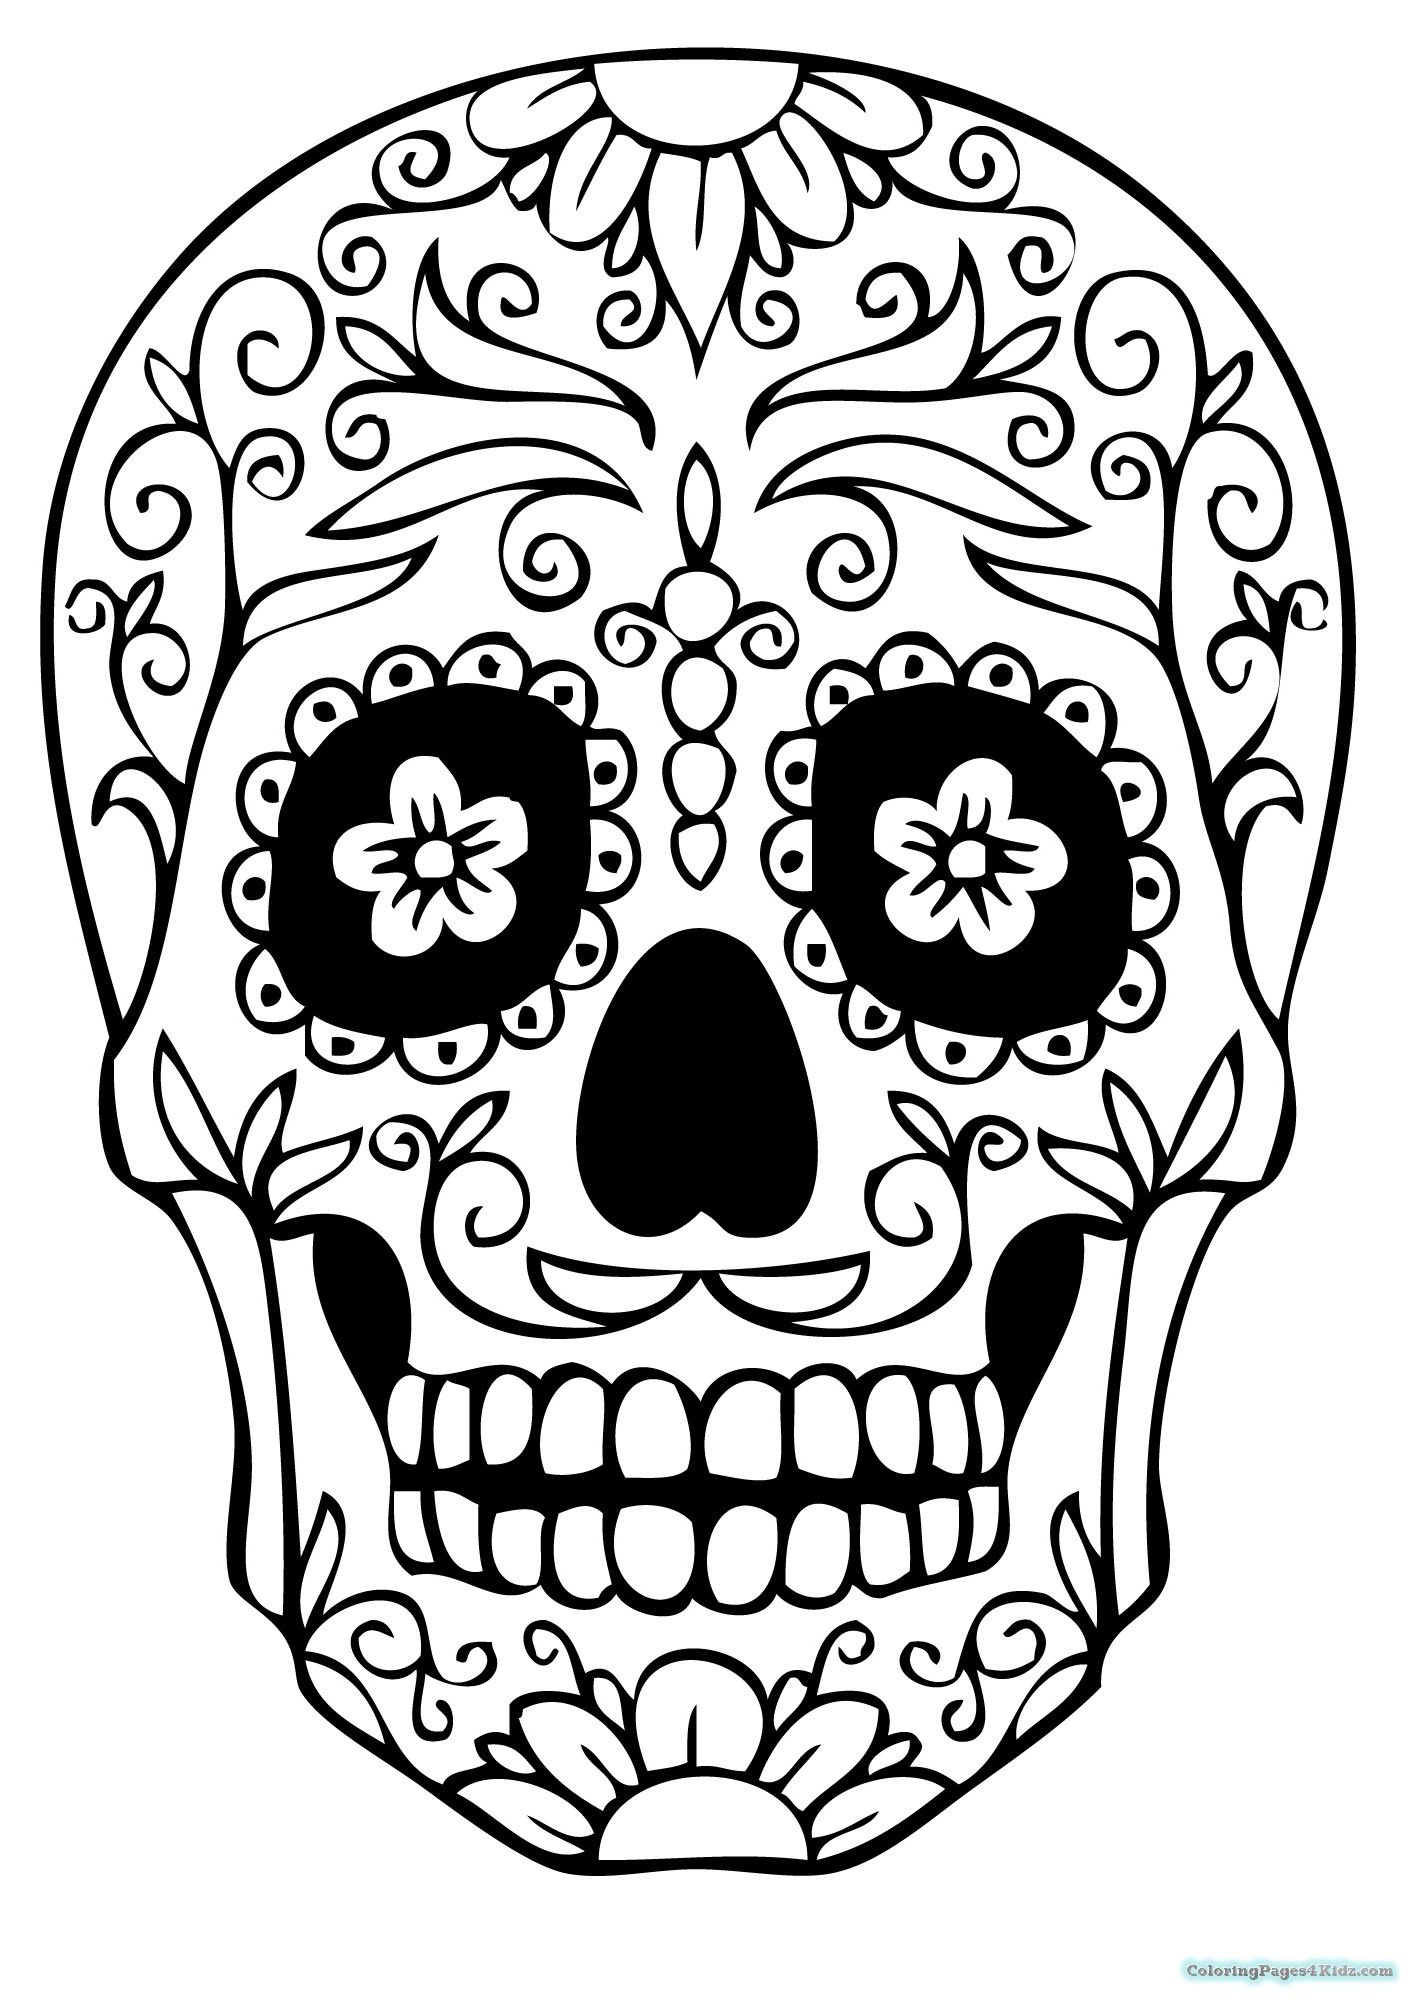 sugar skull template skull pictures art clipartsco skull sugar template